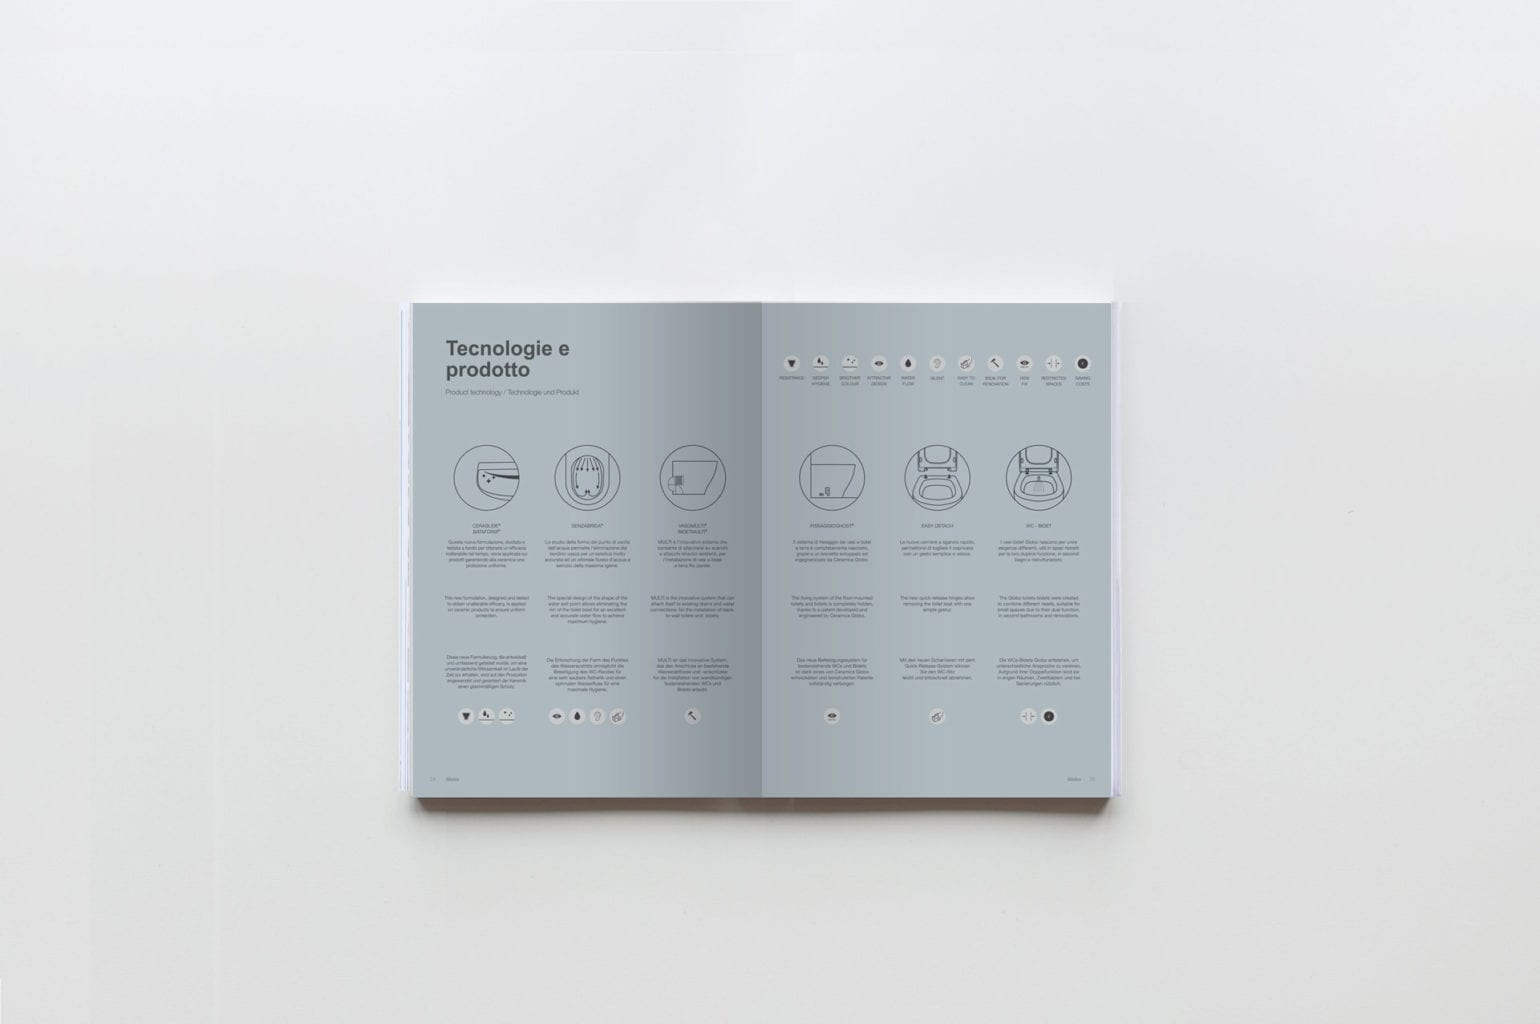 domenico_orefice_design_studio_graphic_branding_globo_general_catalogue_07